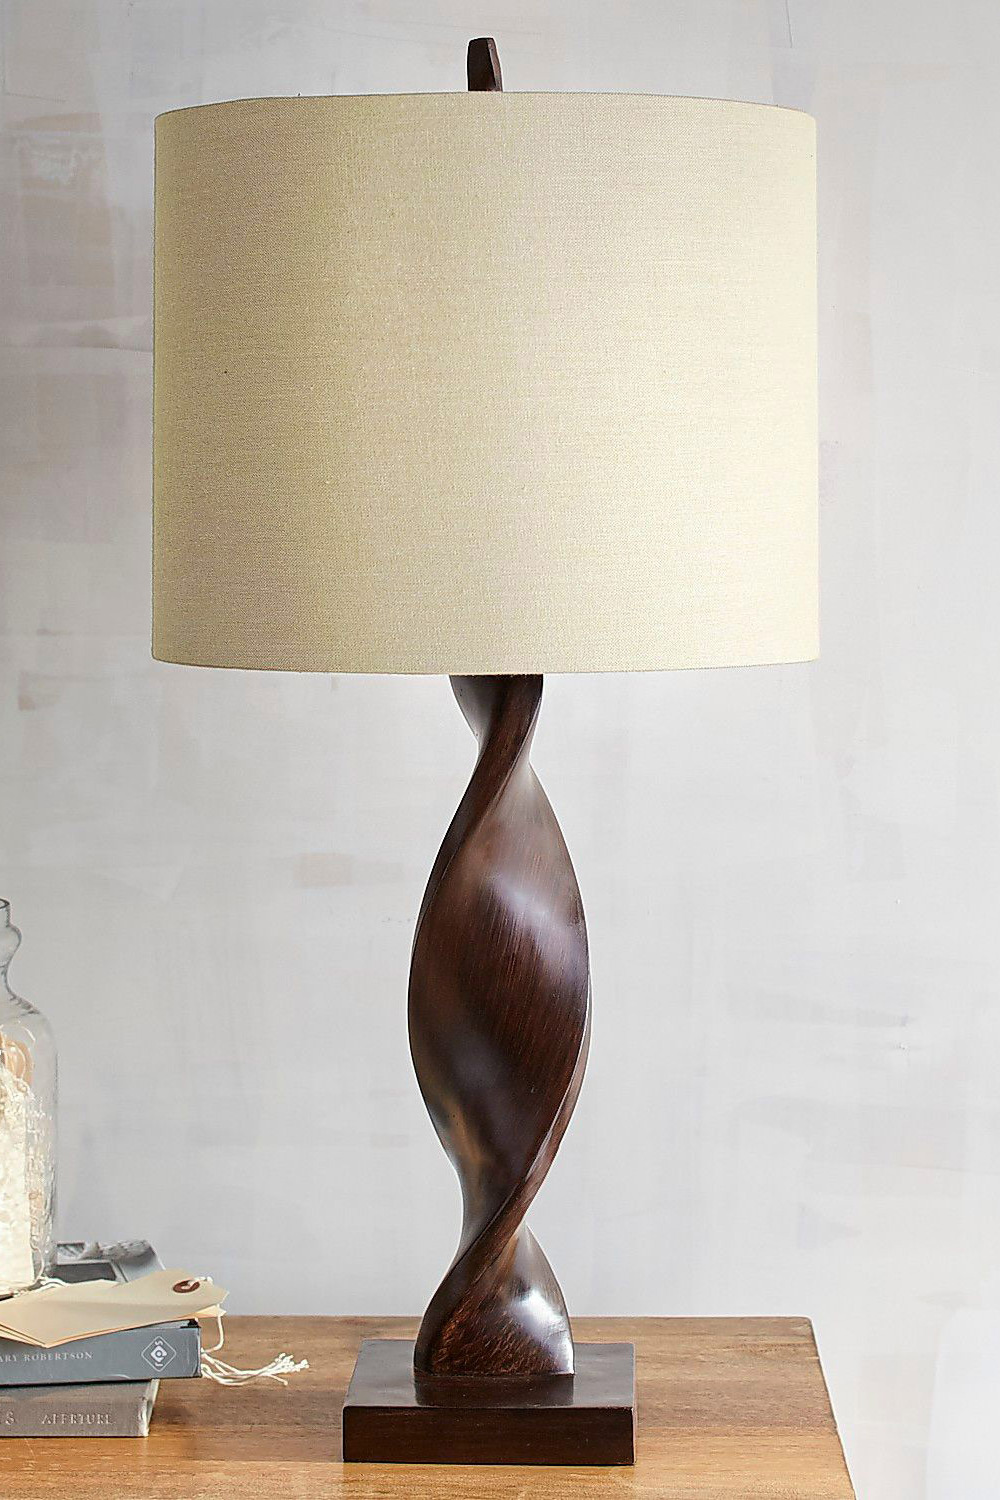 Funky Desk Lamps Brown Twist Table Lamp